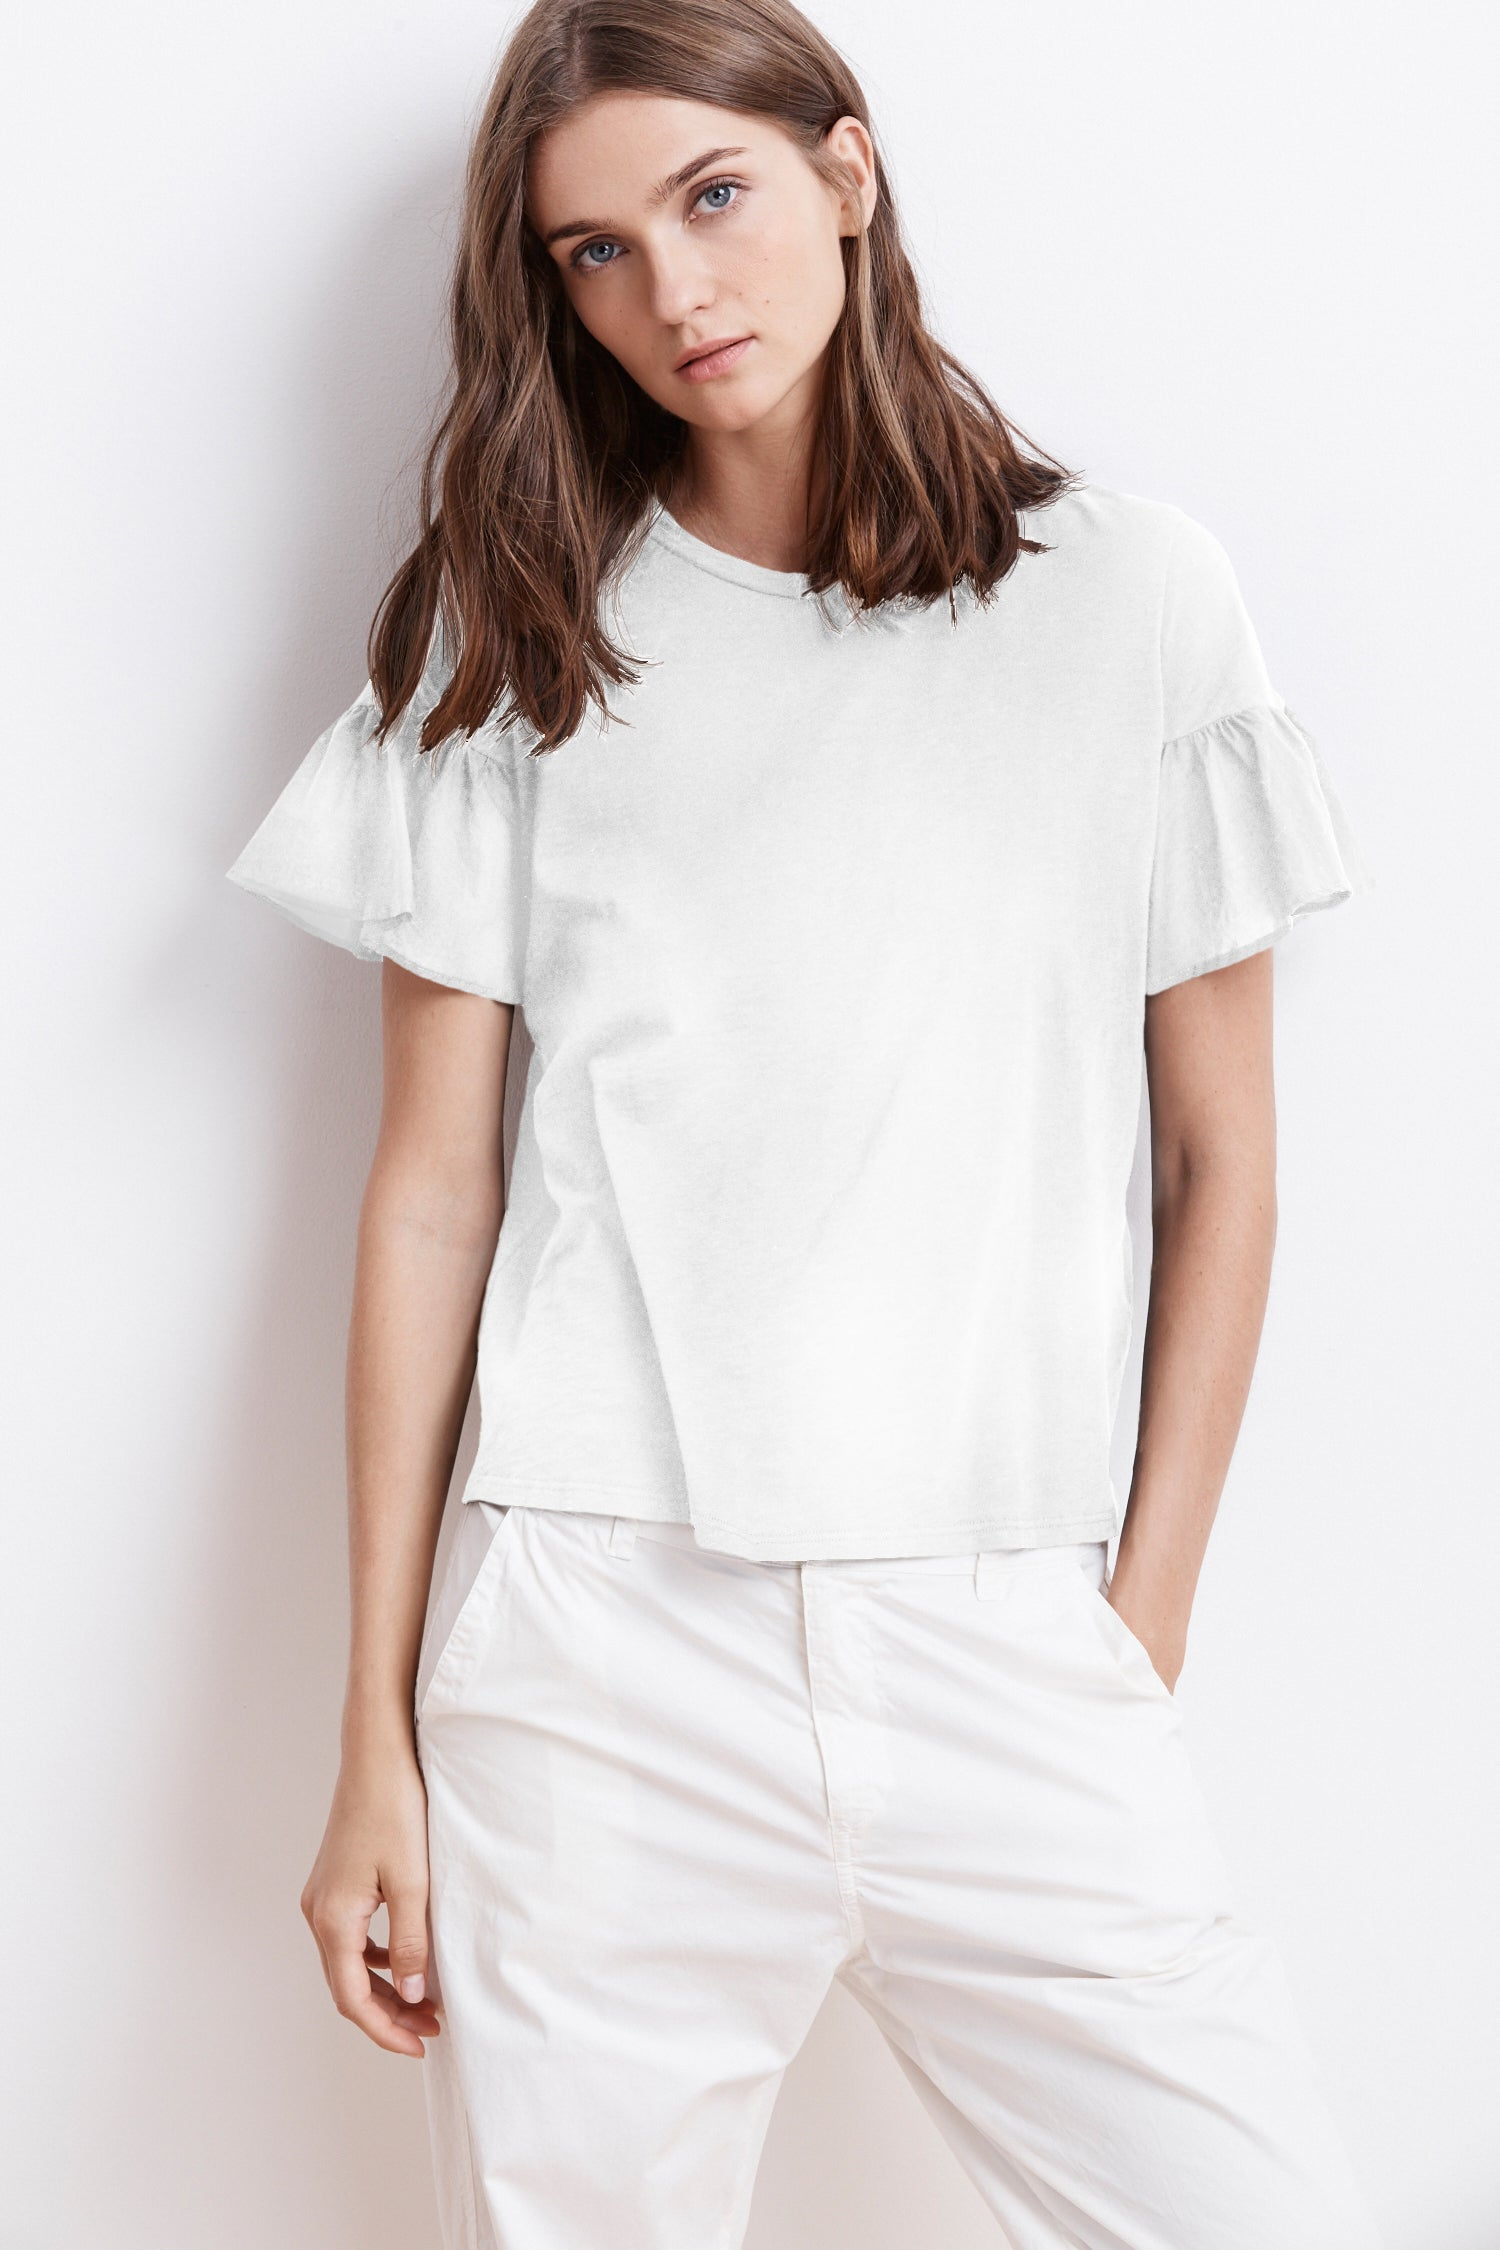 MAUREEN COTTON CONTRAST RUFFLE SLEEVE TEE IN WHITE